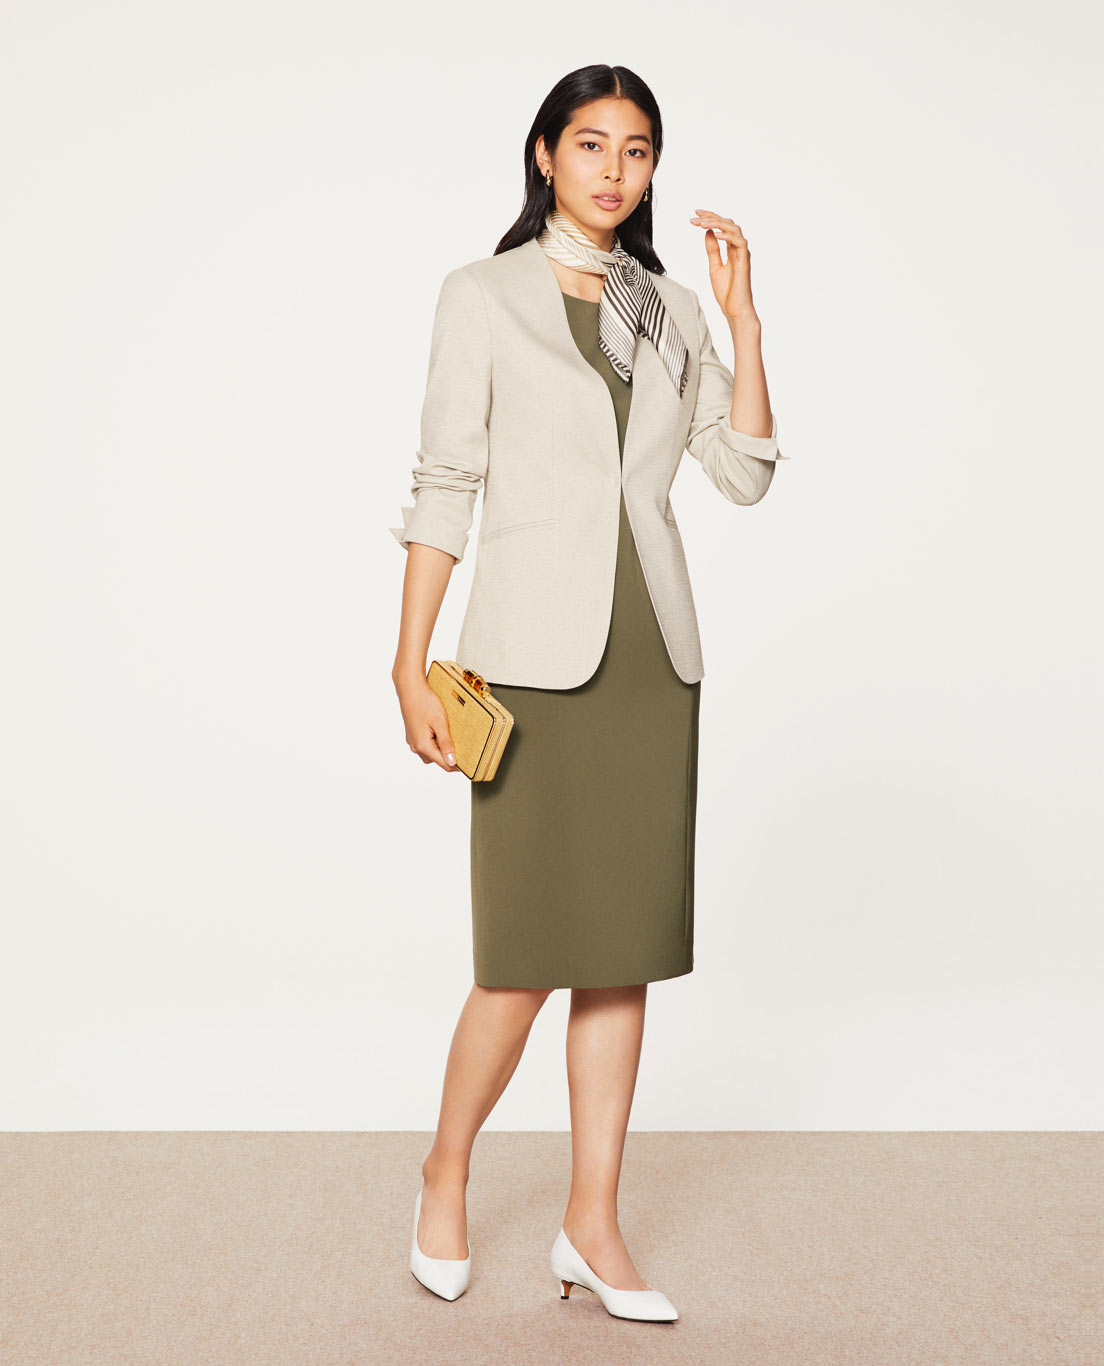 COMFORT NO COLLAR JACKET: 5455 / WASHABLE / STRETCH / UV / DRY / COOL / NATURAL, DRESS: 5447 / WASHABLE / STRETCH / SILKY TOUCH / KHAKI